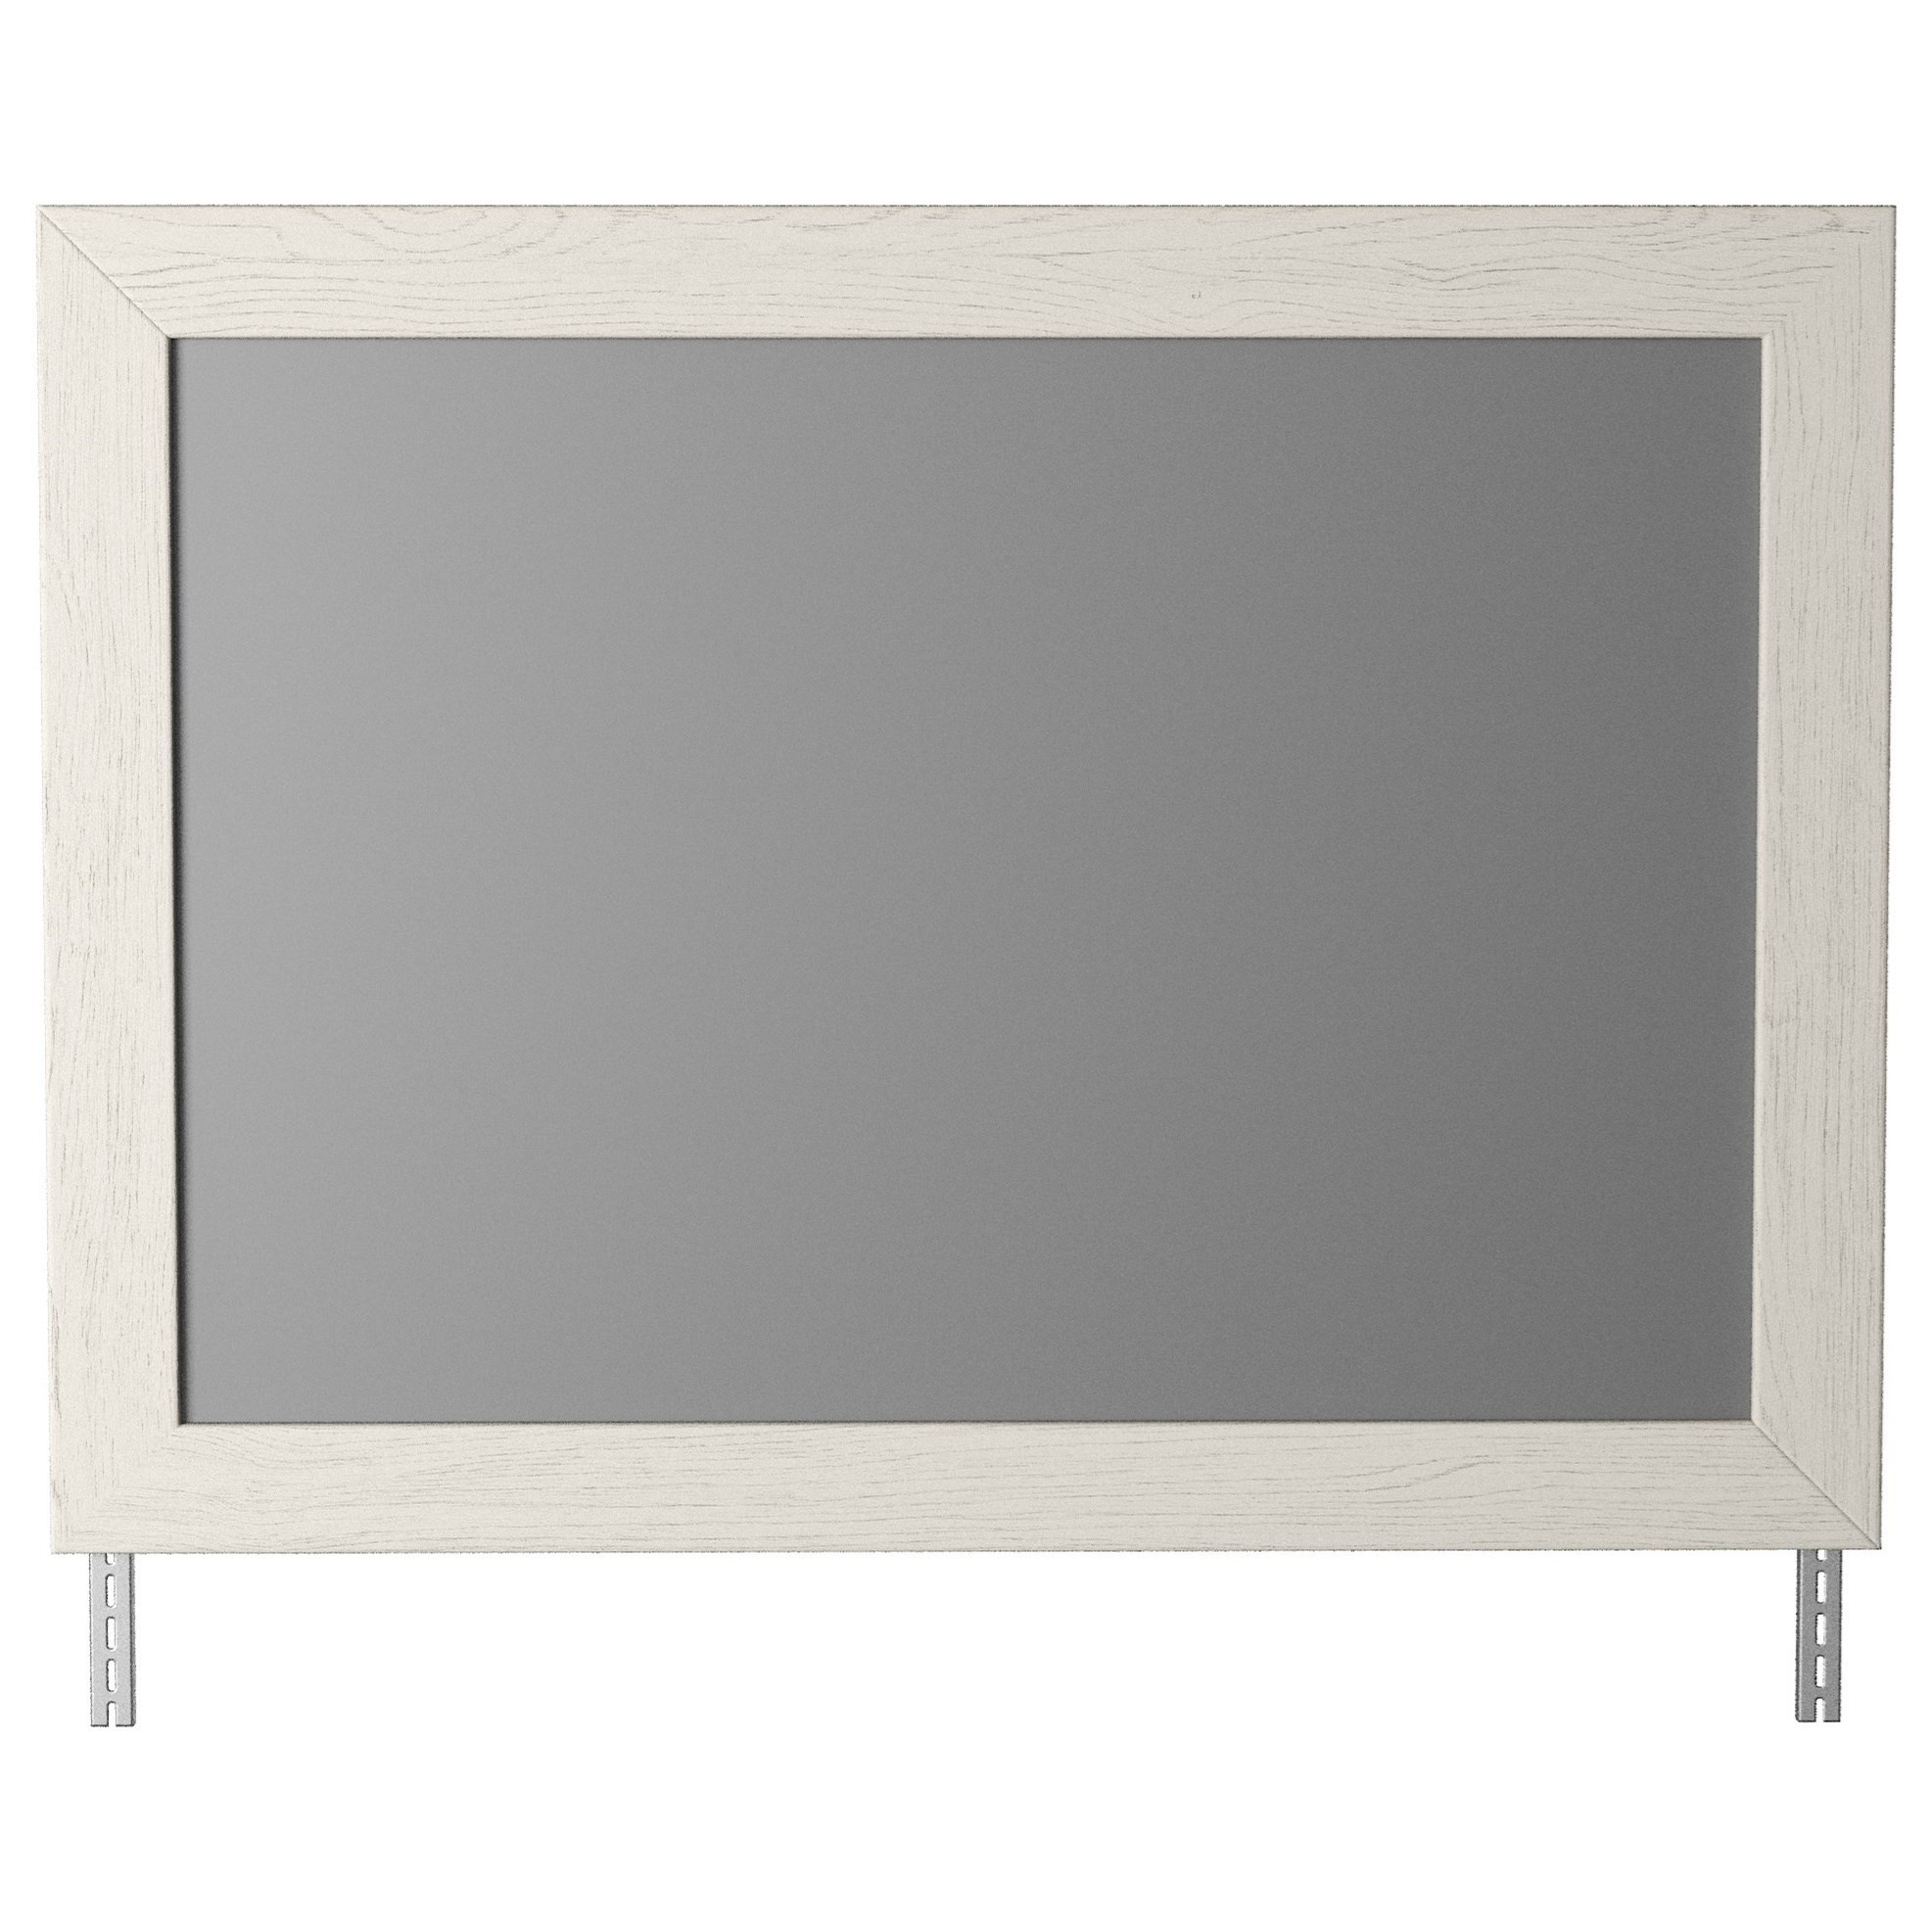 Stelsie Bedroom Mirror by Signature Design by Ashley at Standard Furniture